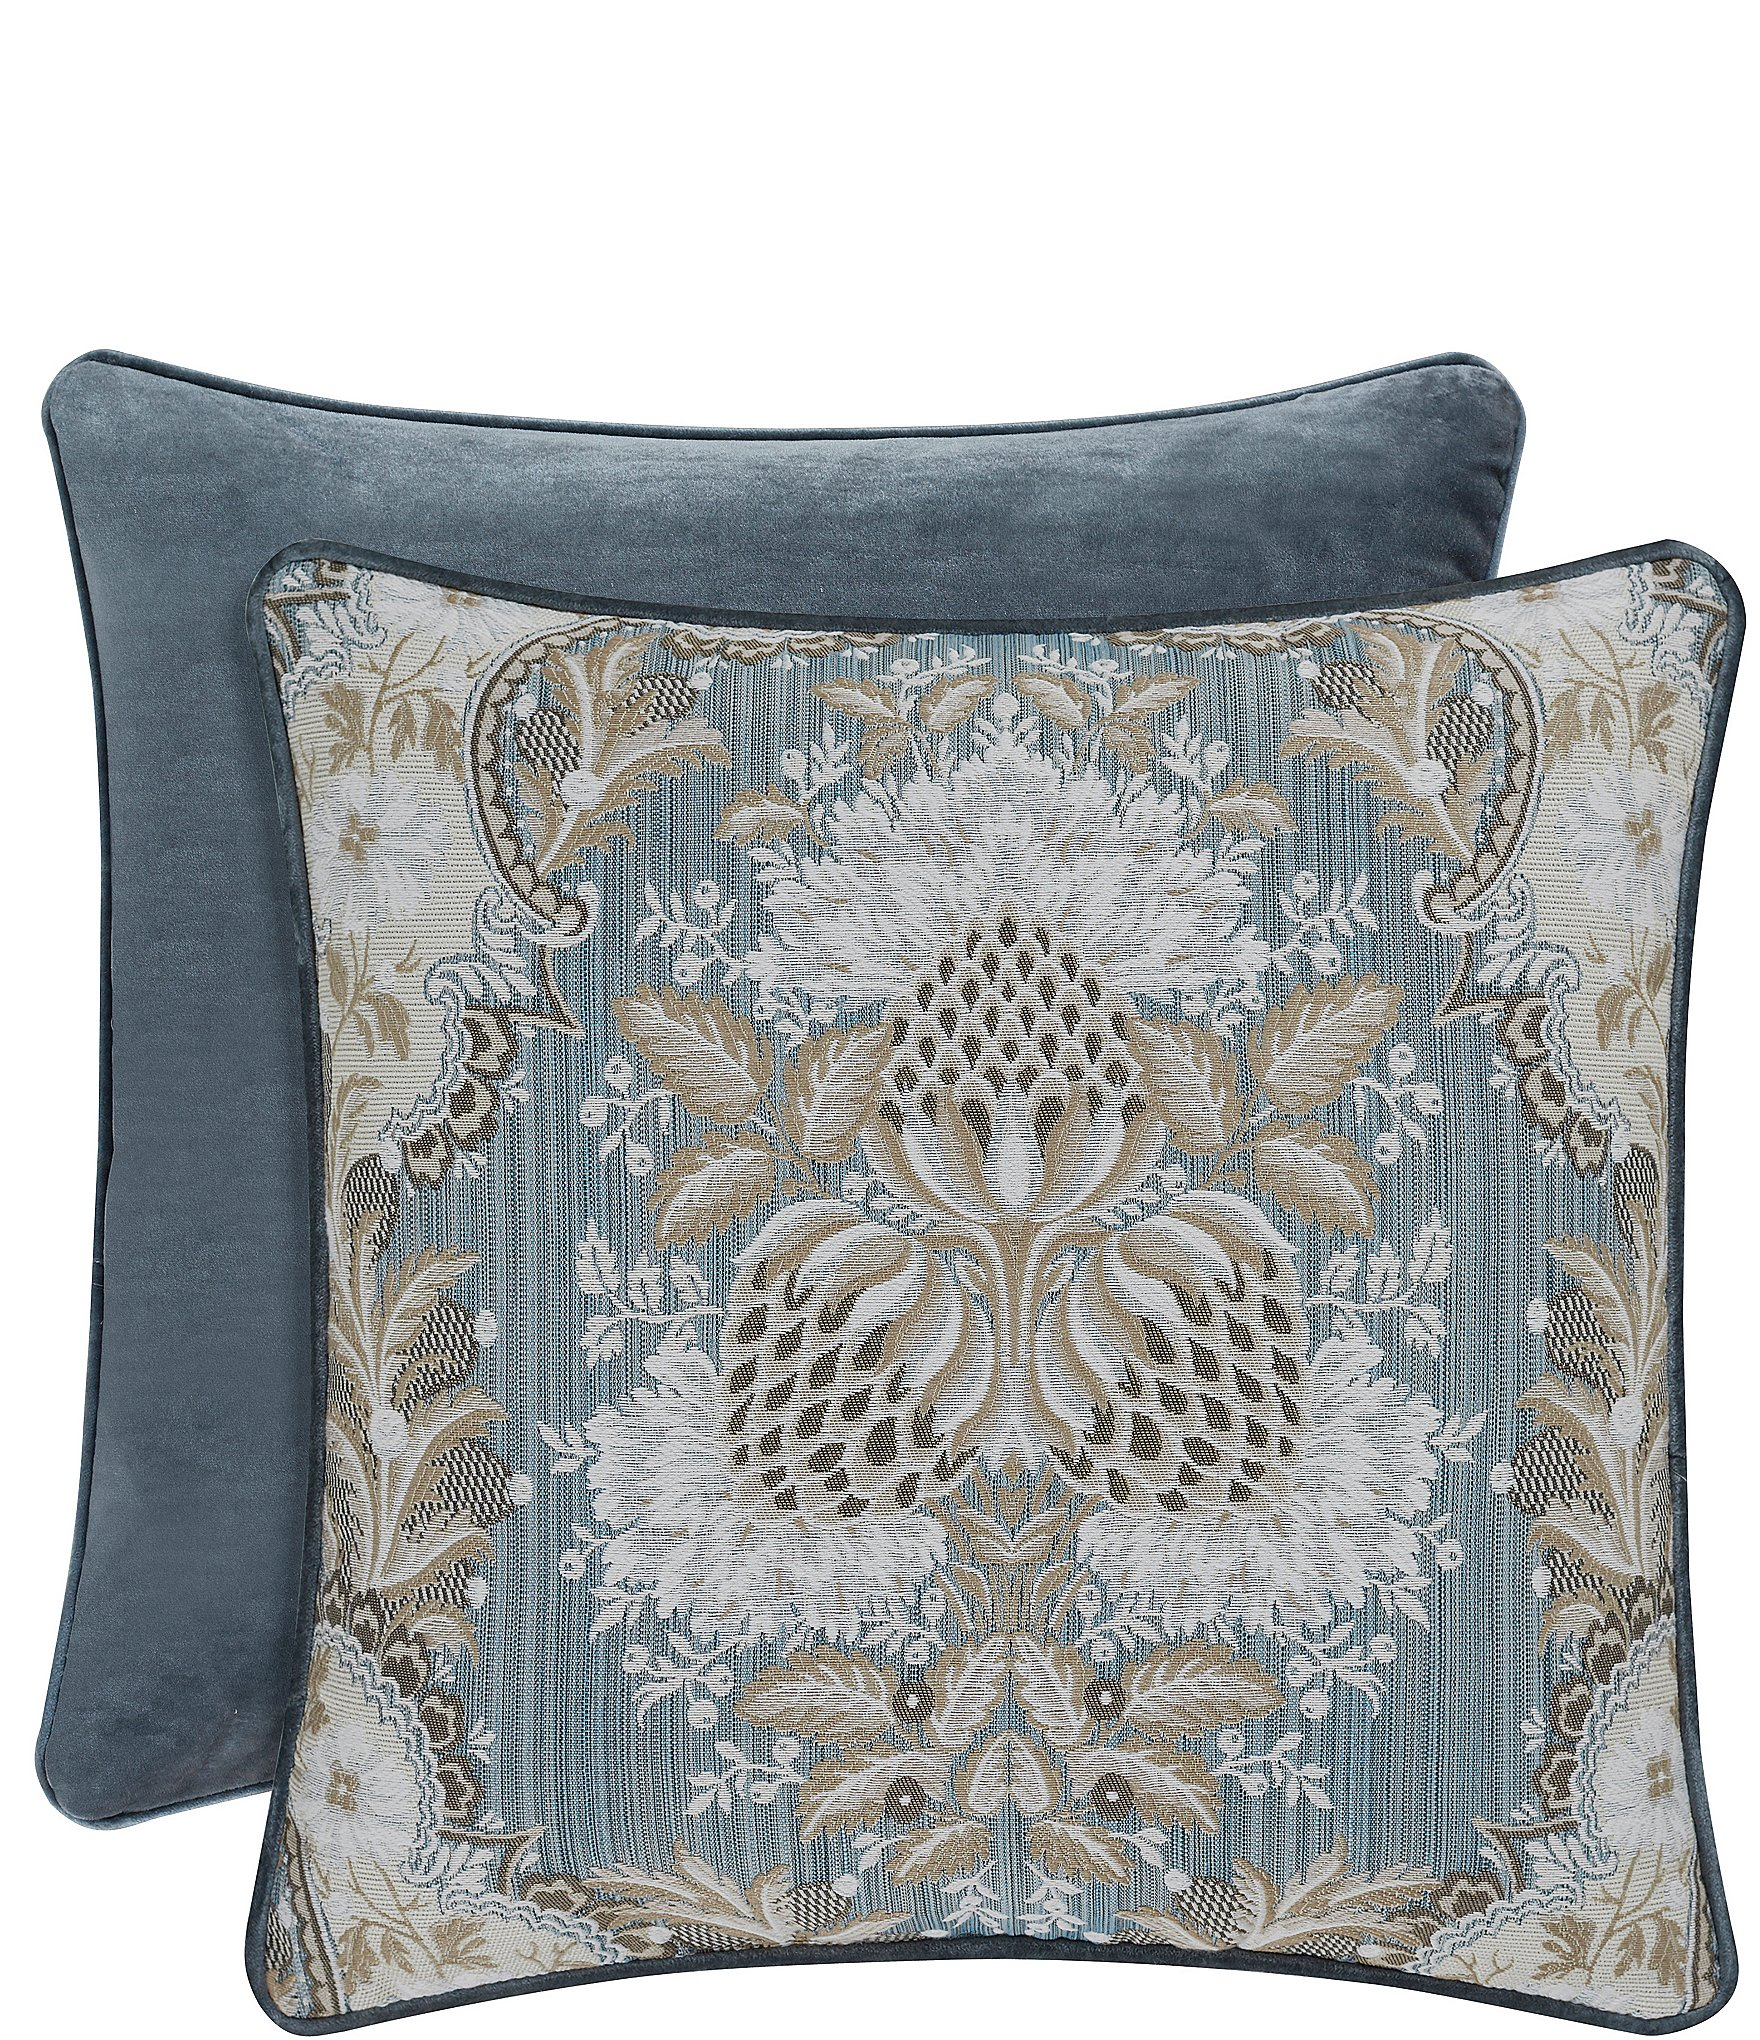 Nicole Miller Home Decorative Pillow Made In India Billingsblessingbags.org